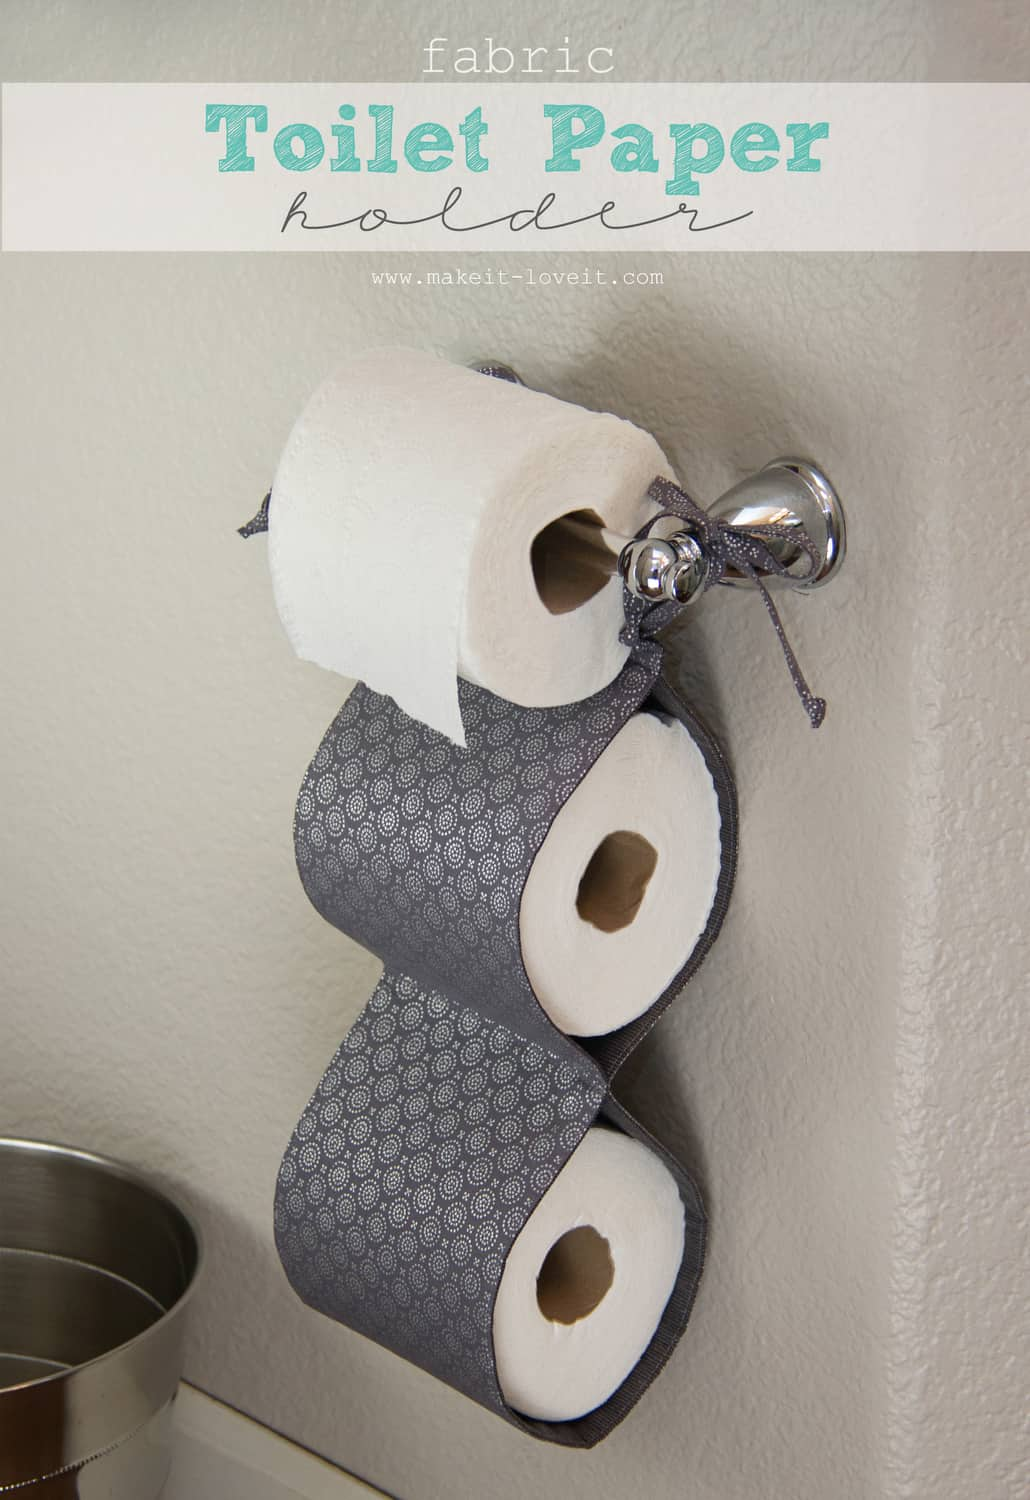 Fabric toilet paper holder